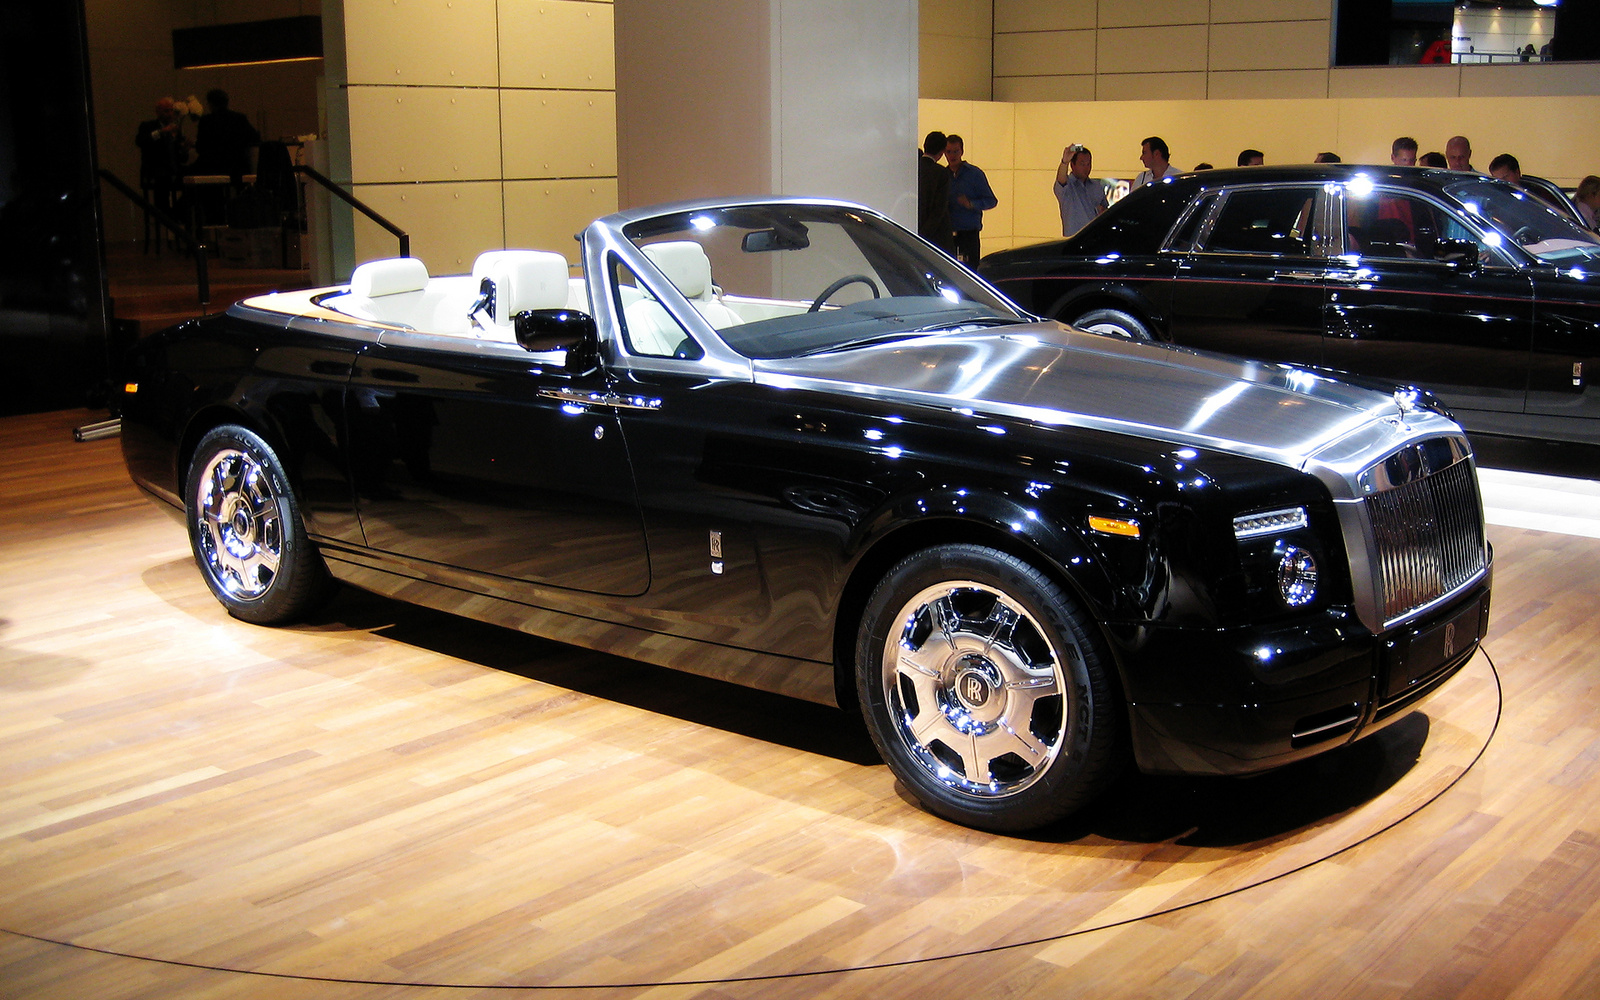 2011 Rolls royce Phantom Drophead Coupe #2